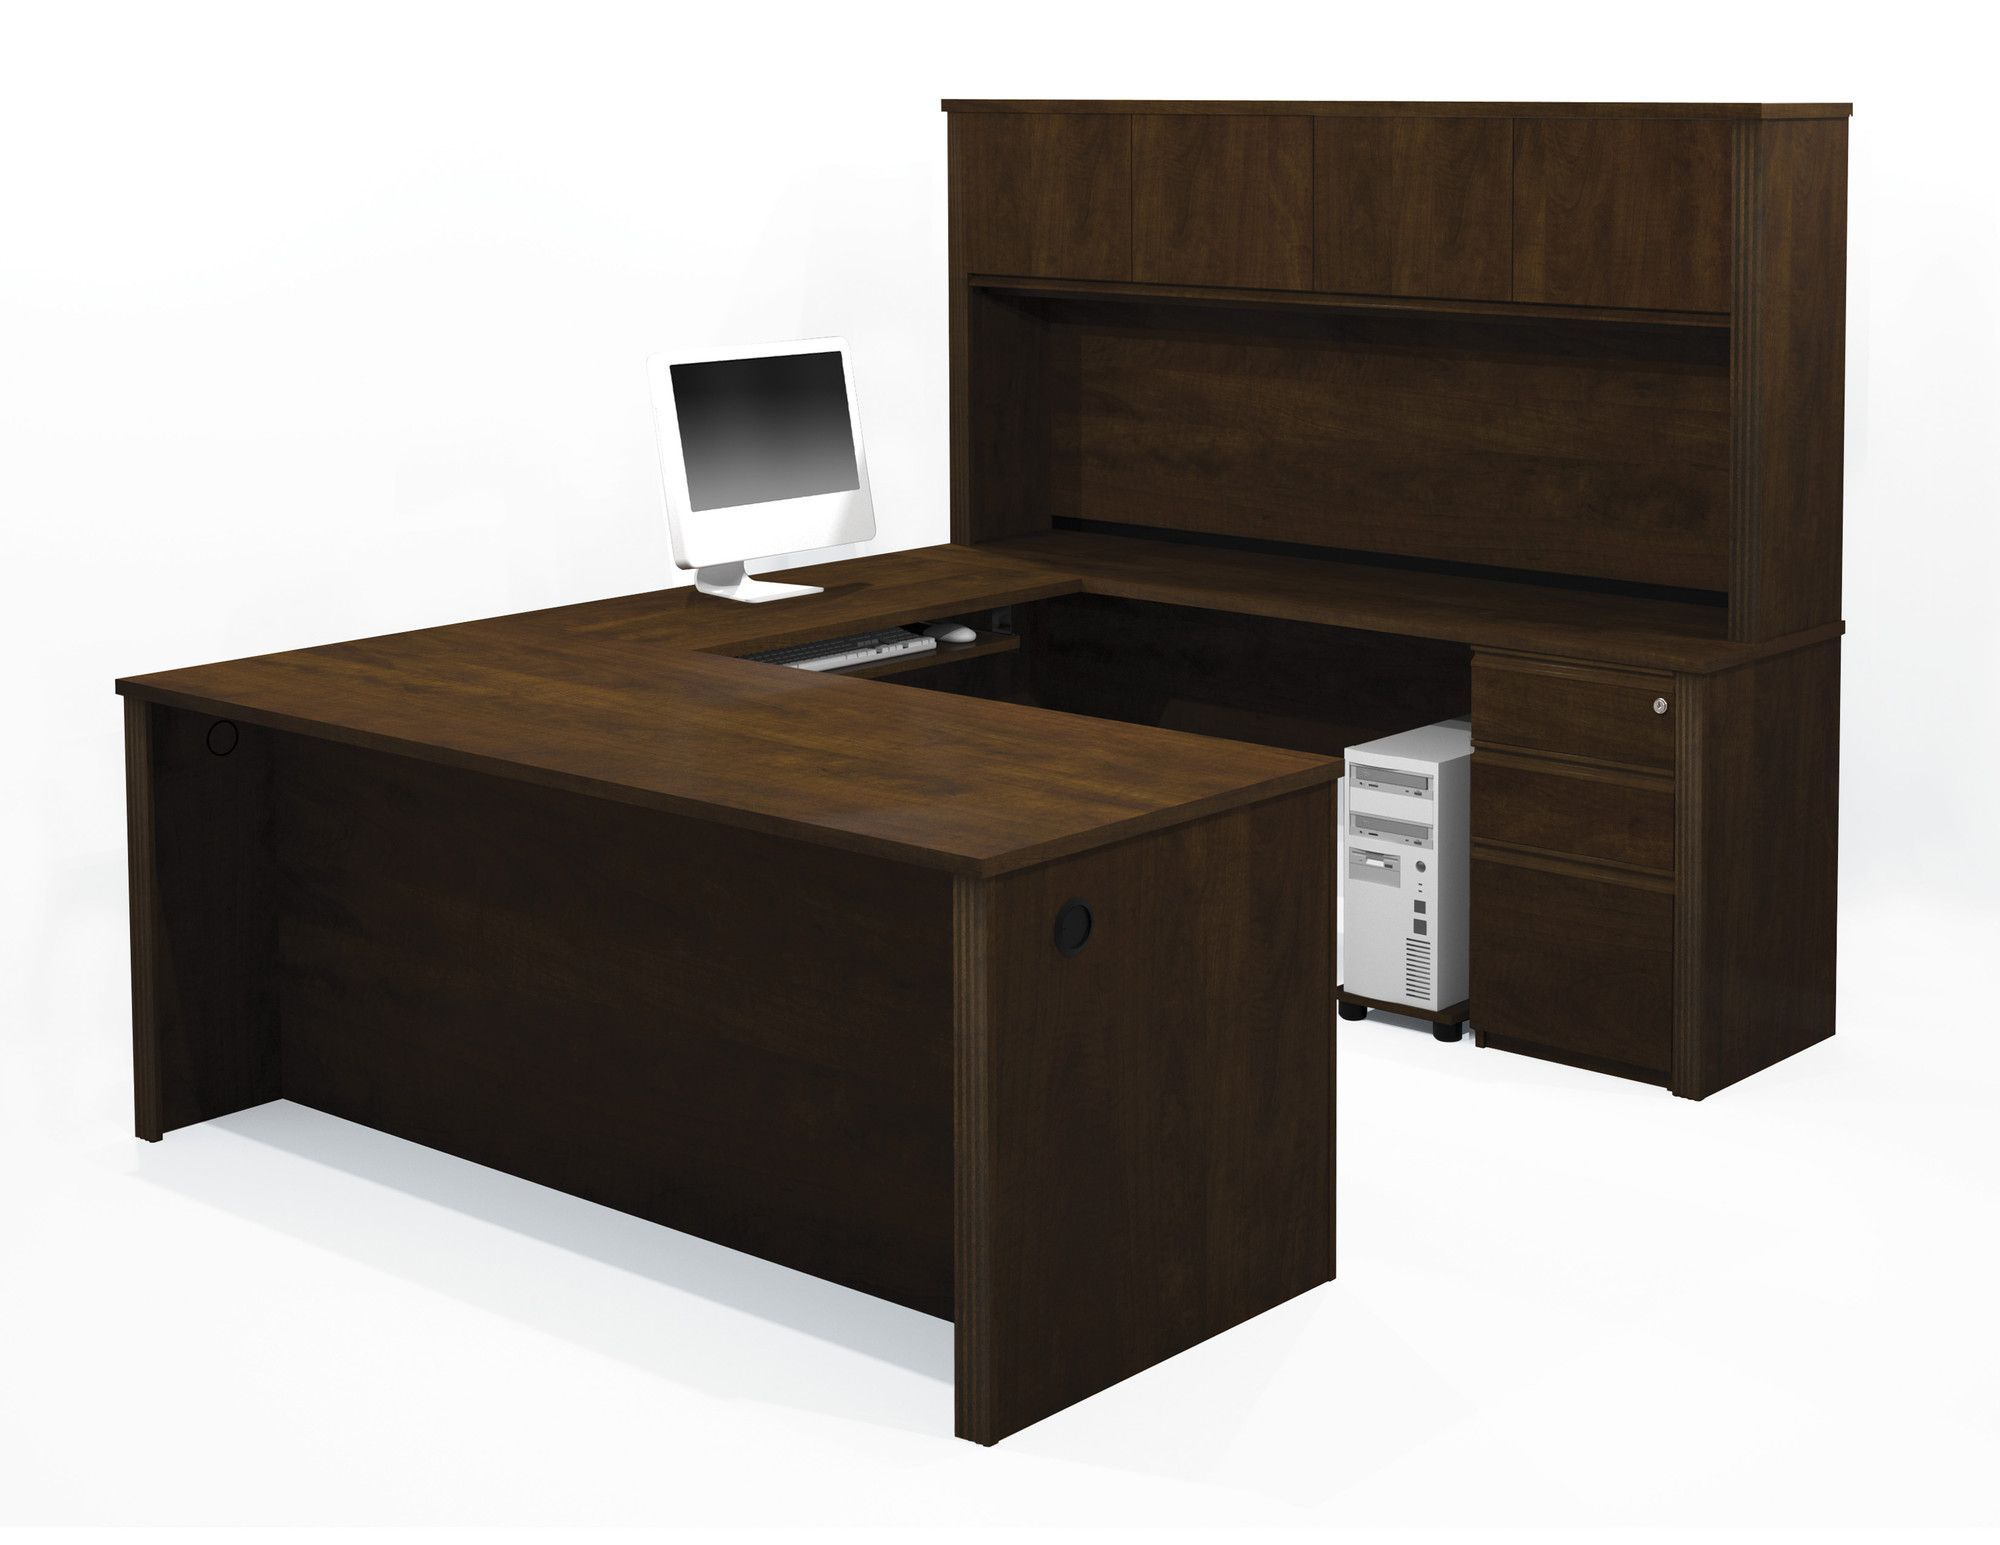 bormann executive desk with 3 drawers and 4 cabinets